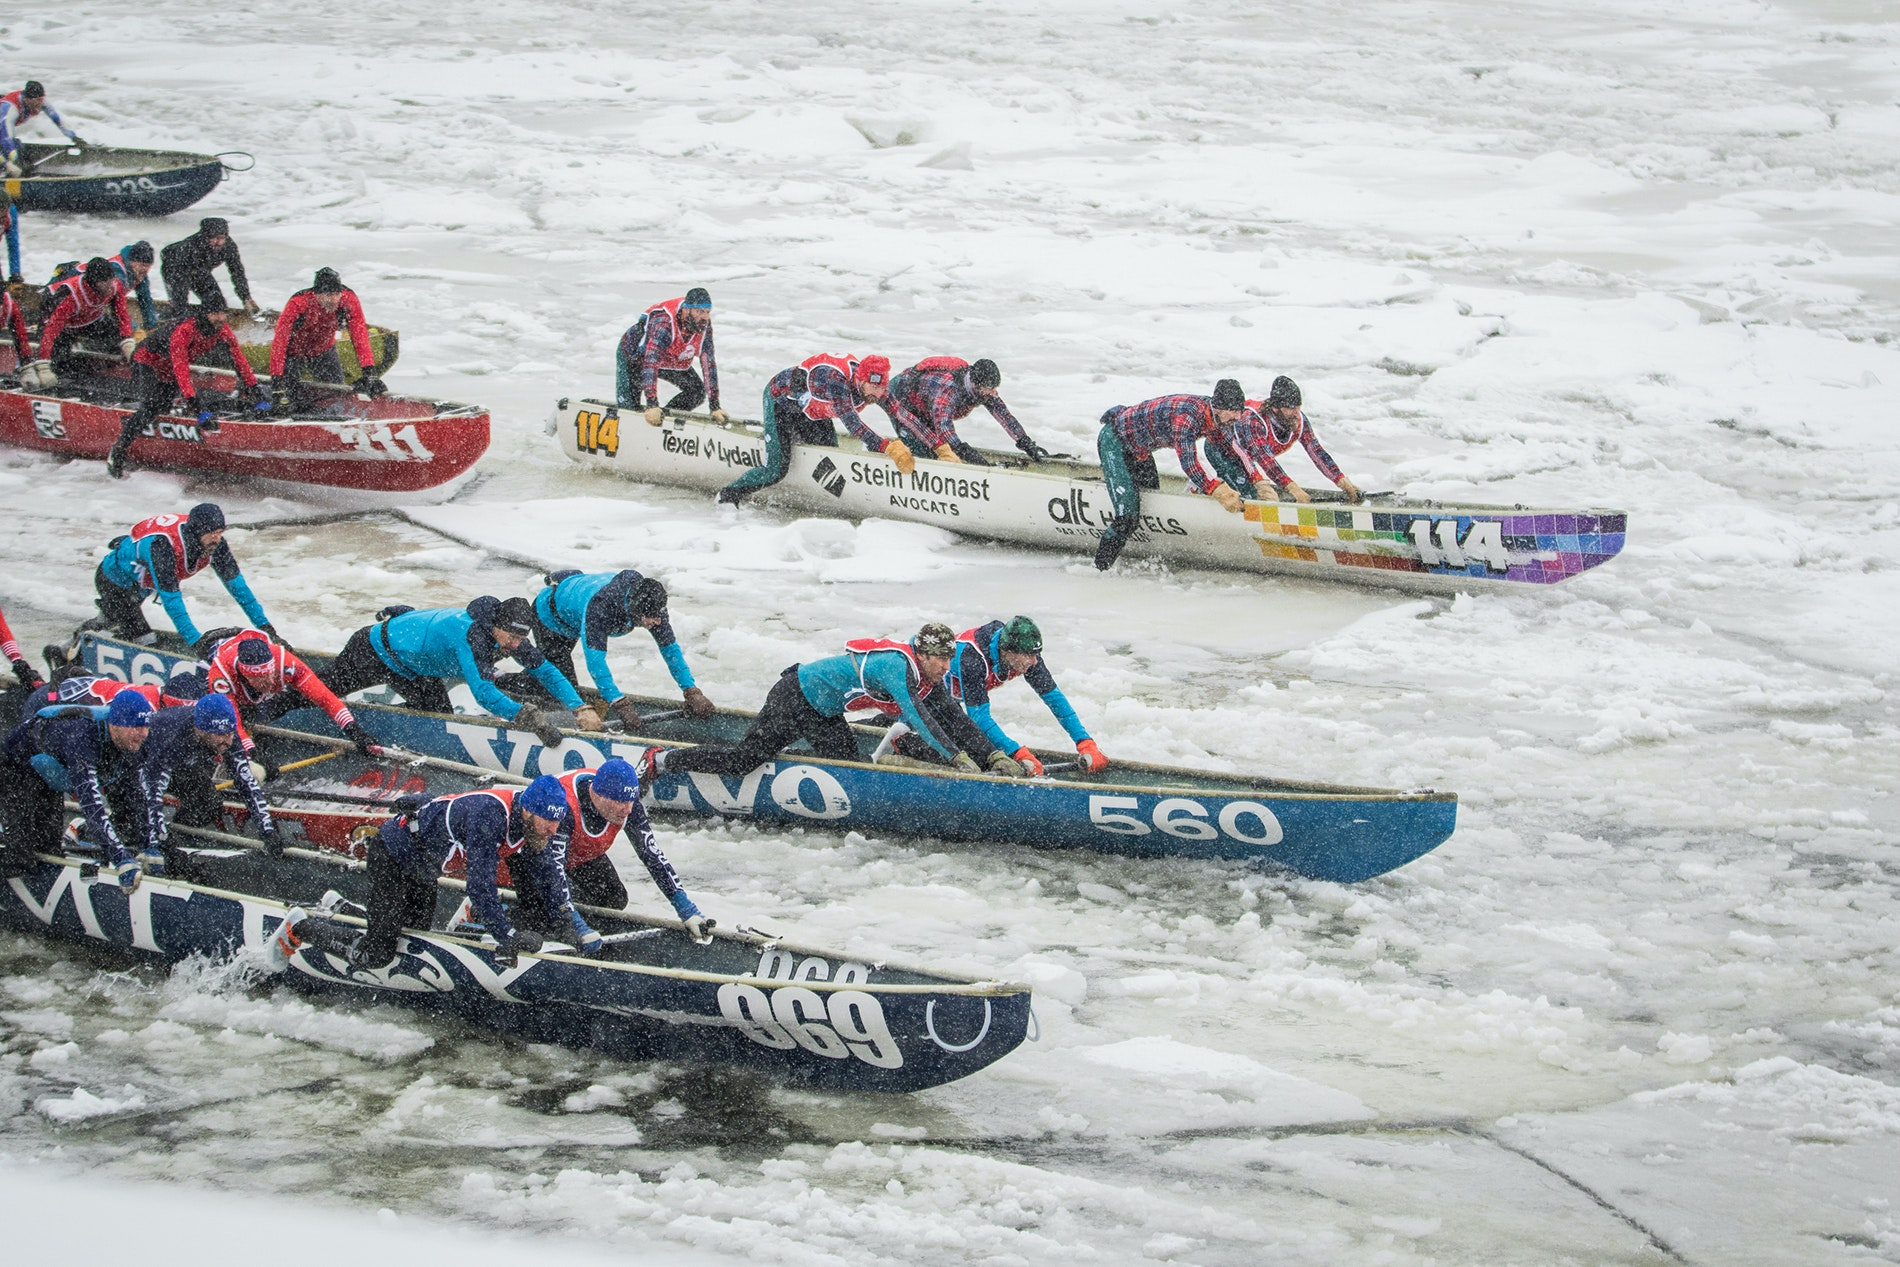 Only the hardiest competitors participate in ice canoe races across the St. Lawrence River, part of the Quebec Winter Carnival.